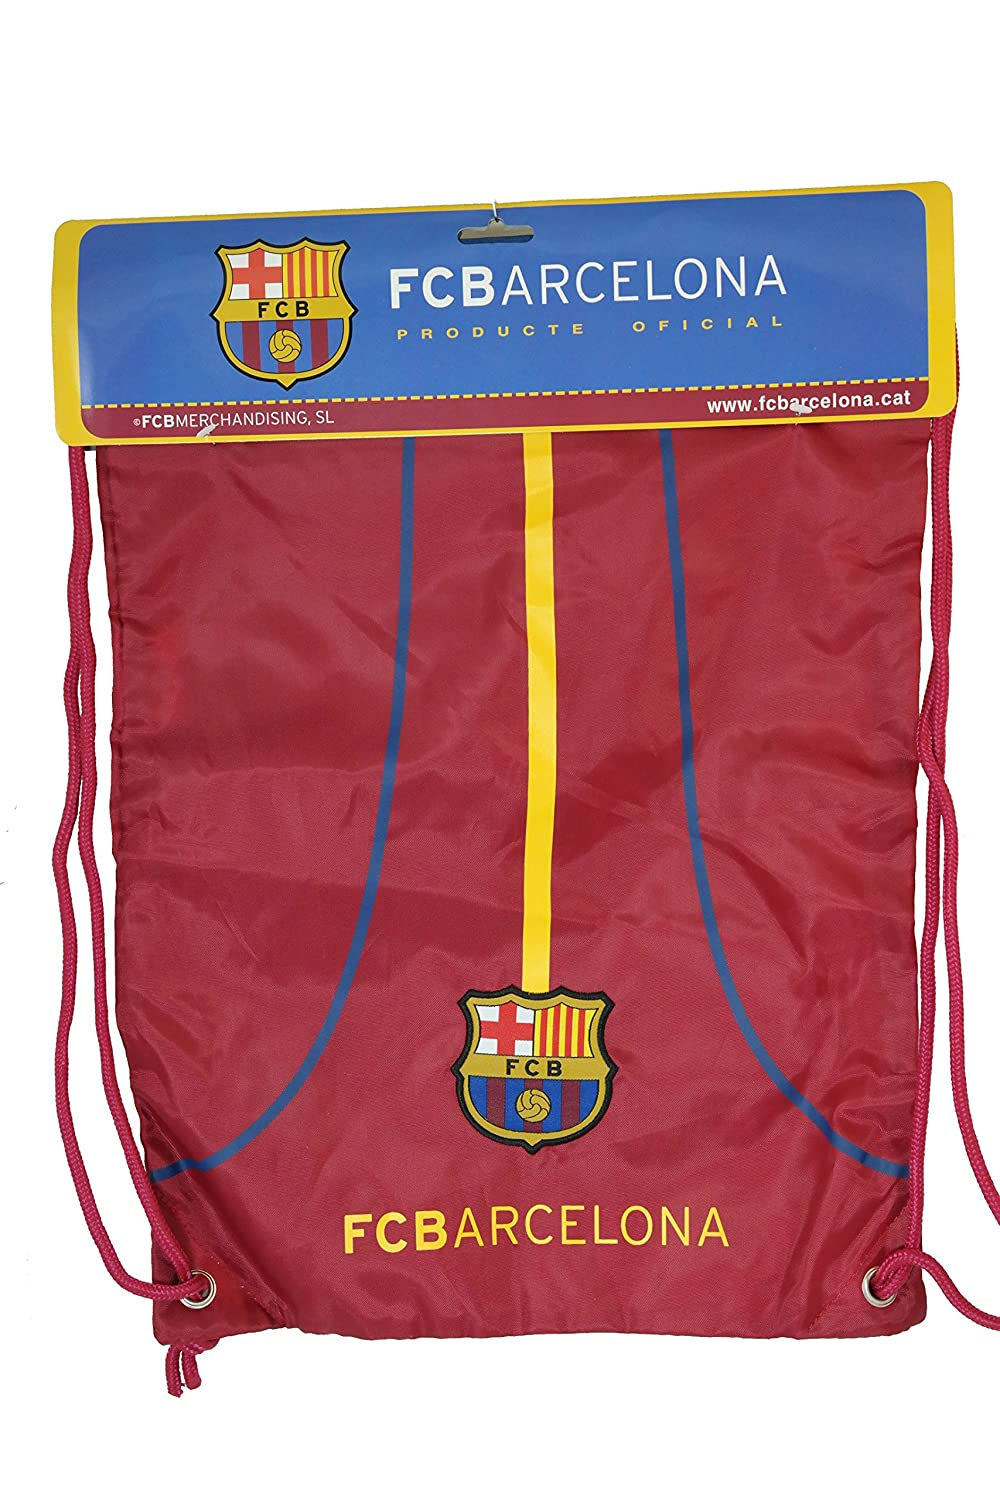 FC Barcelona Authentic Official Licensed Soccer Drawstring Cinchバッグ04 B011SFYZB0